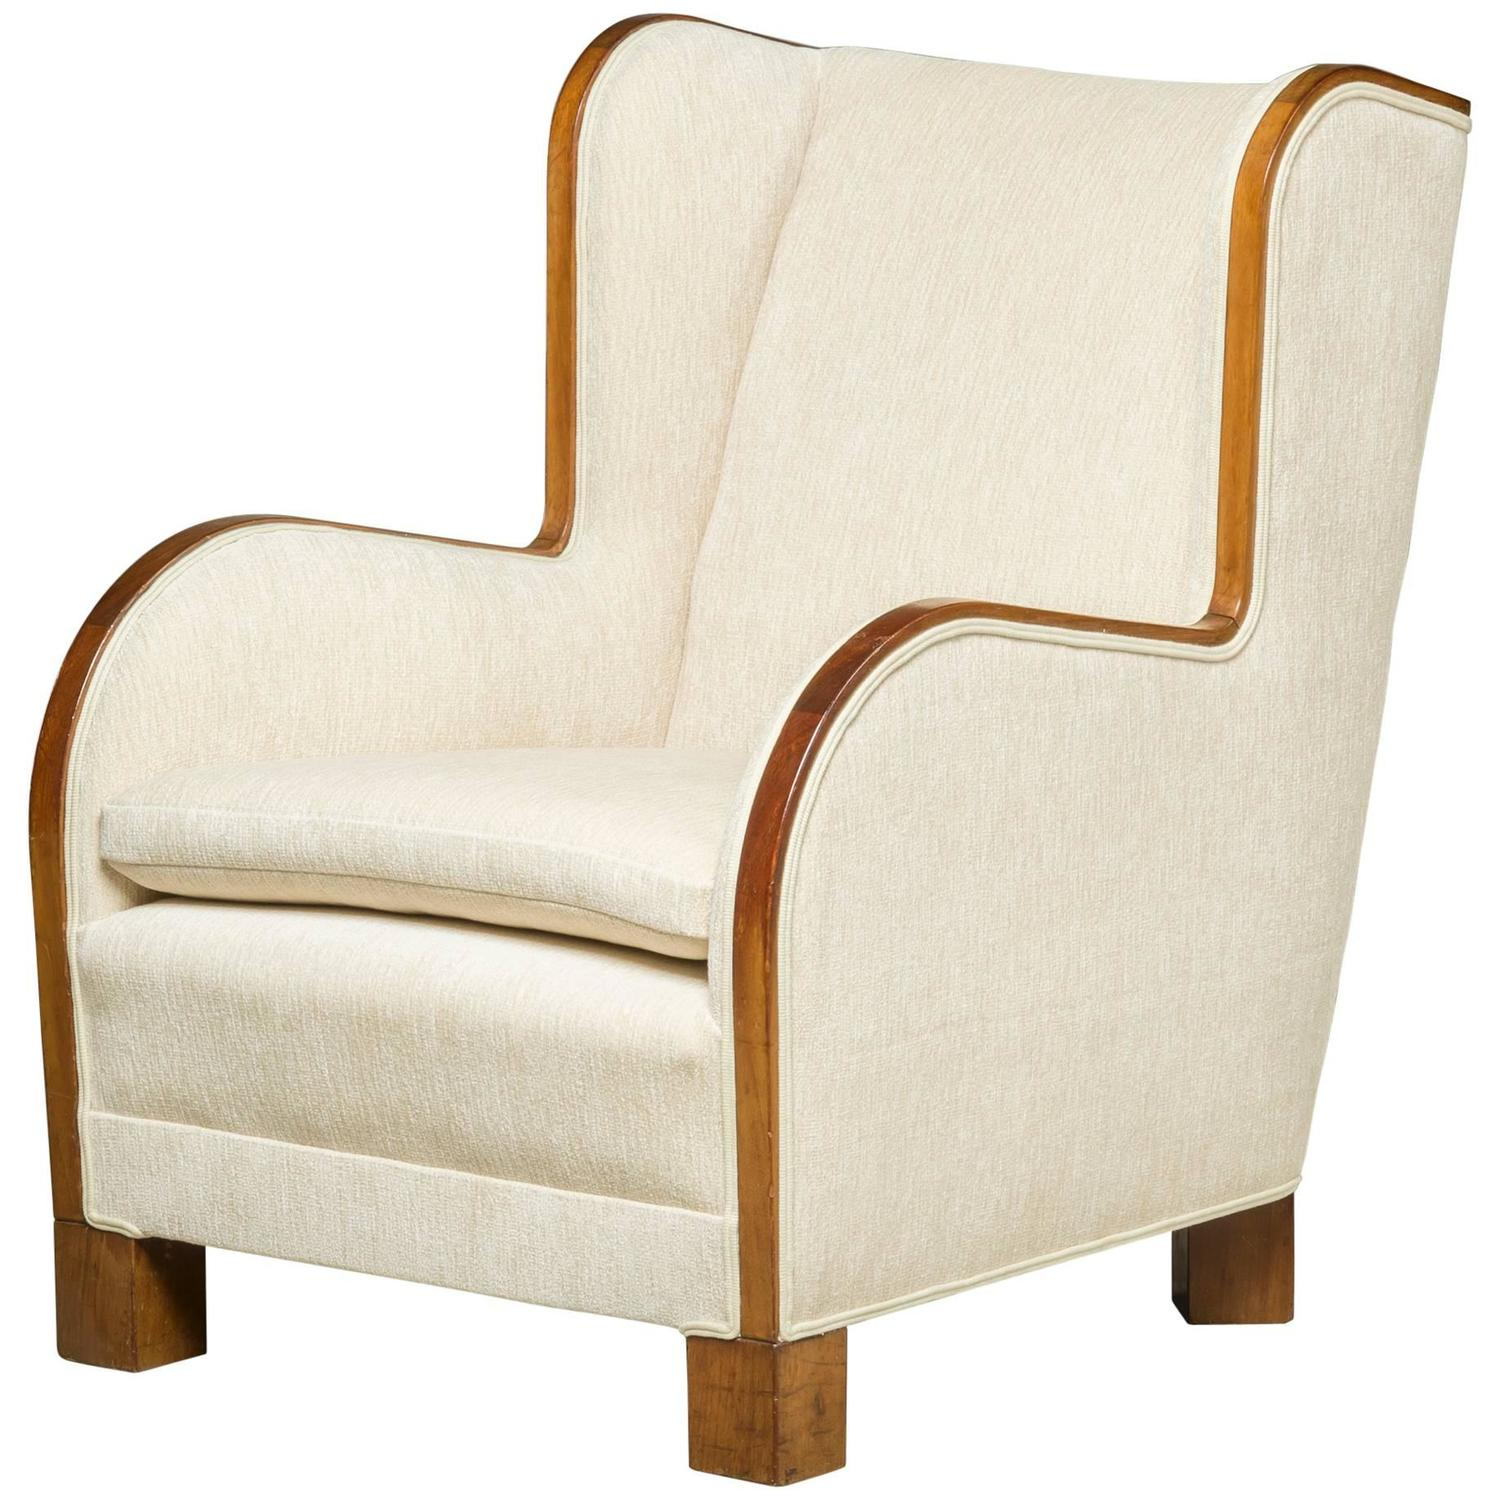 Reupholstered high back 39 easy chair 39 danish design for for Reupholstered furniture for sale